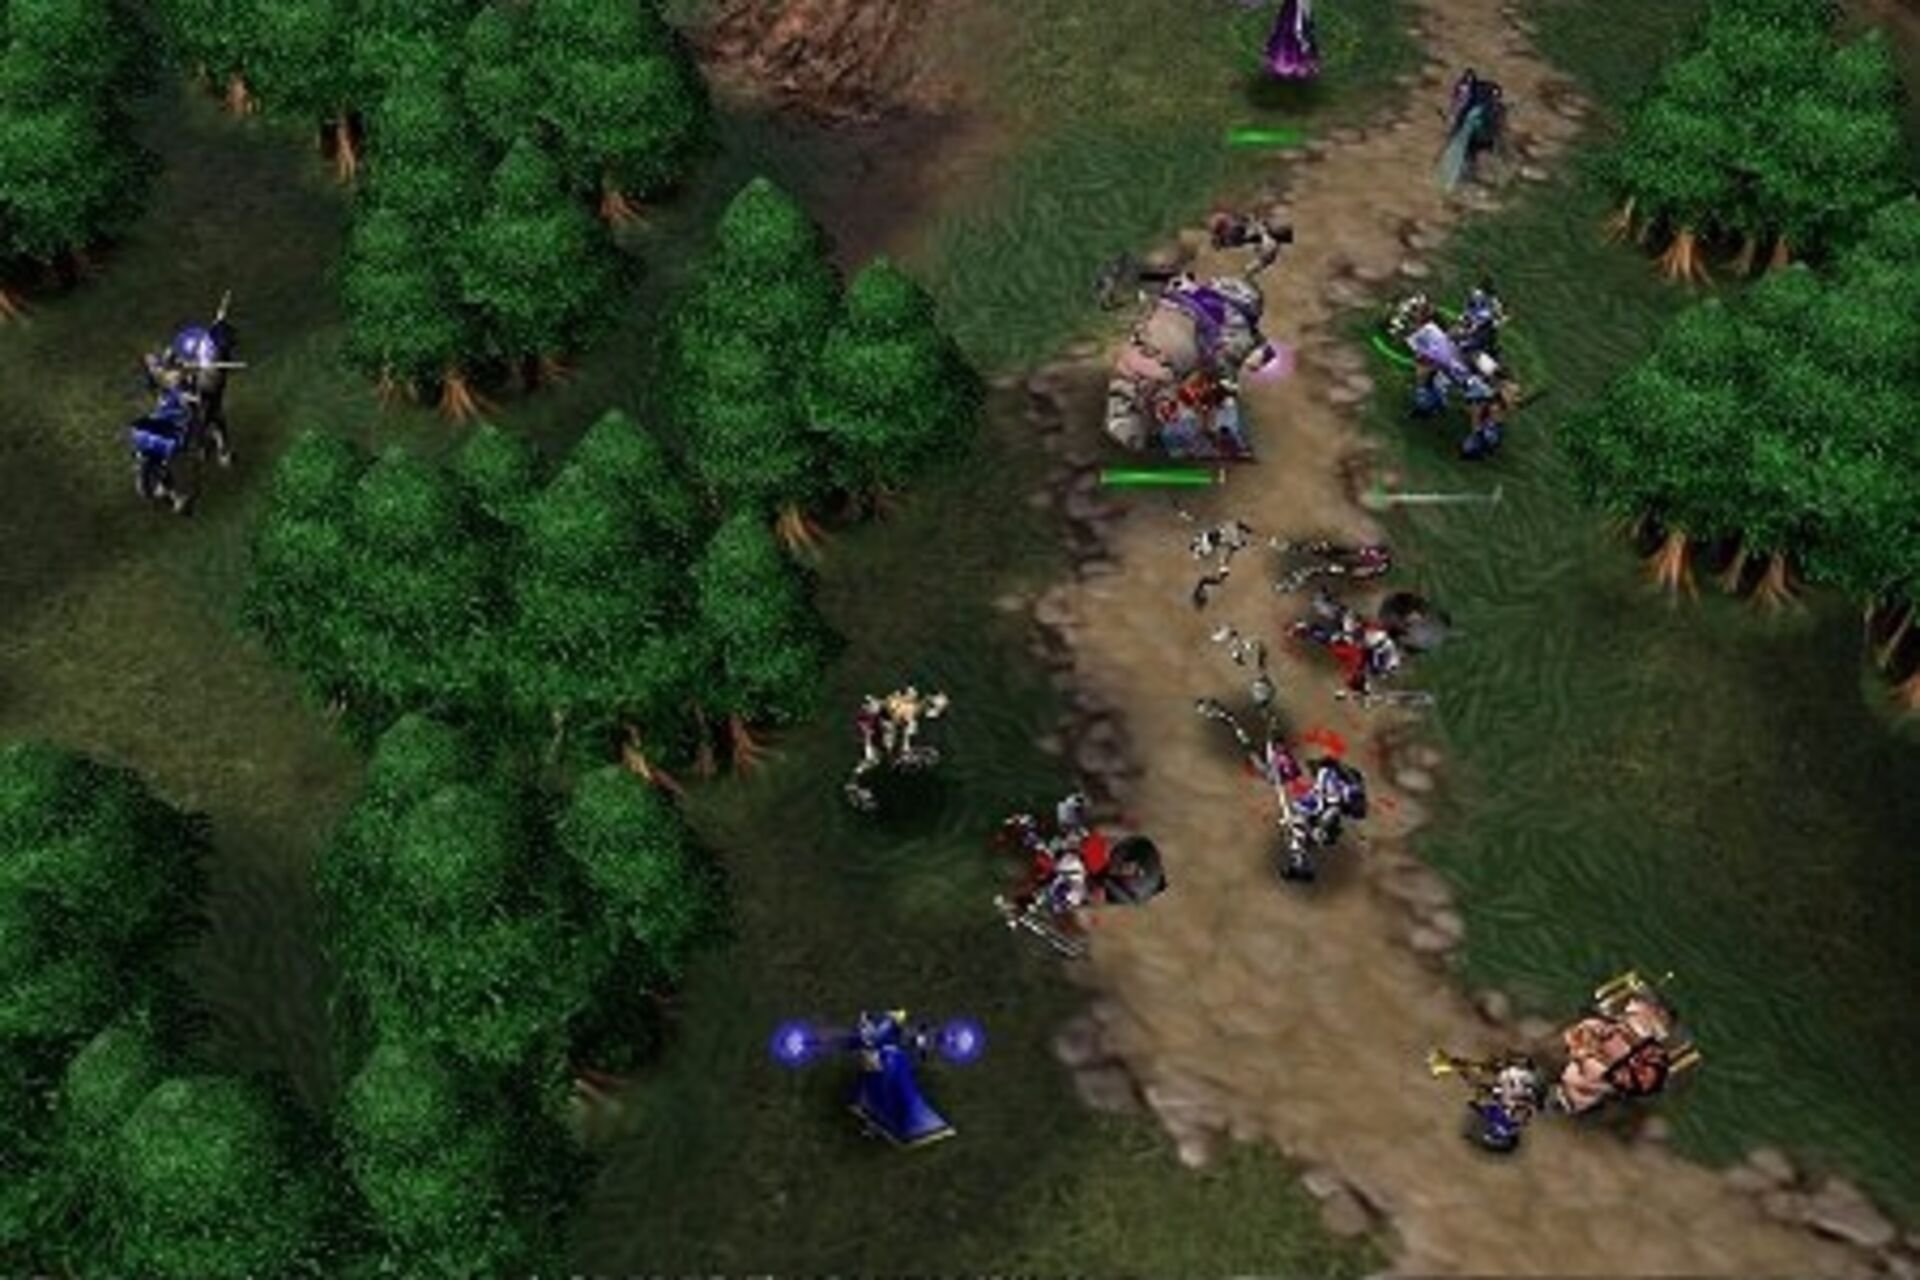 Warcraft 3 has a new public test realm • Eurogamer net